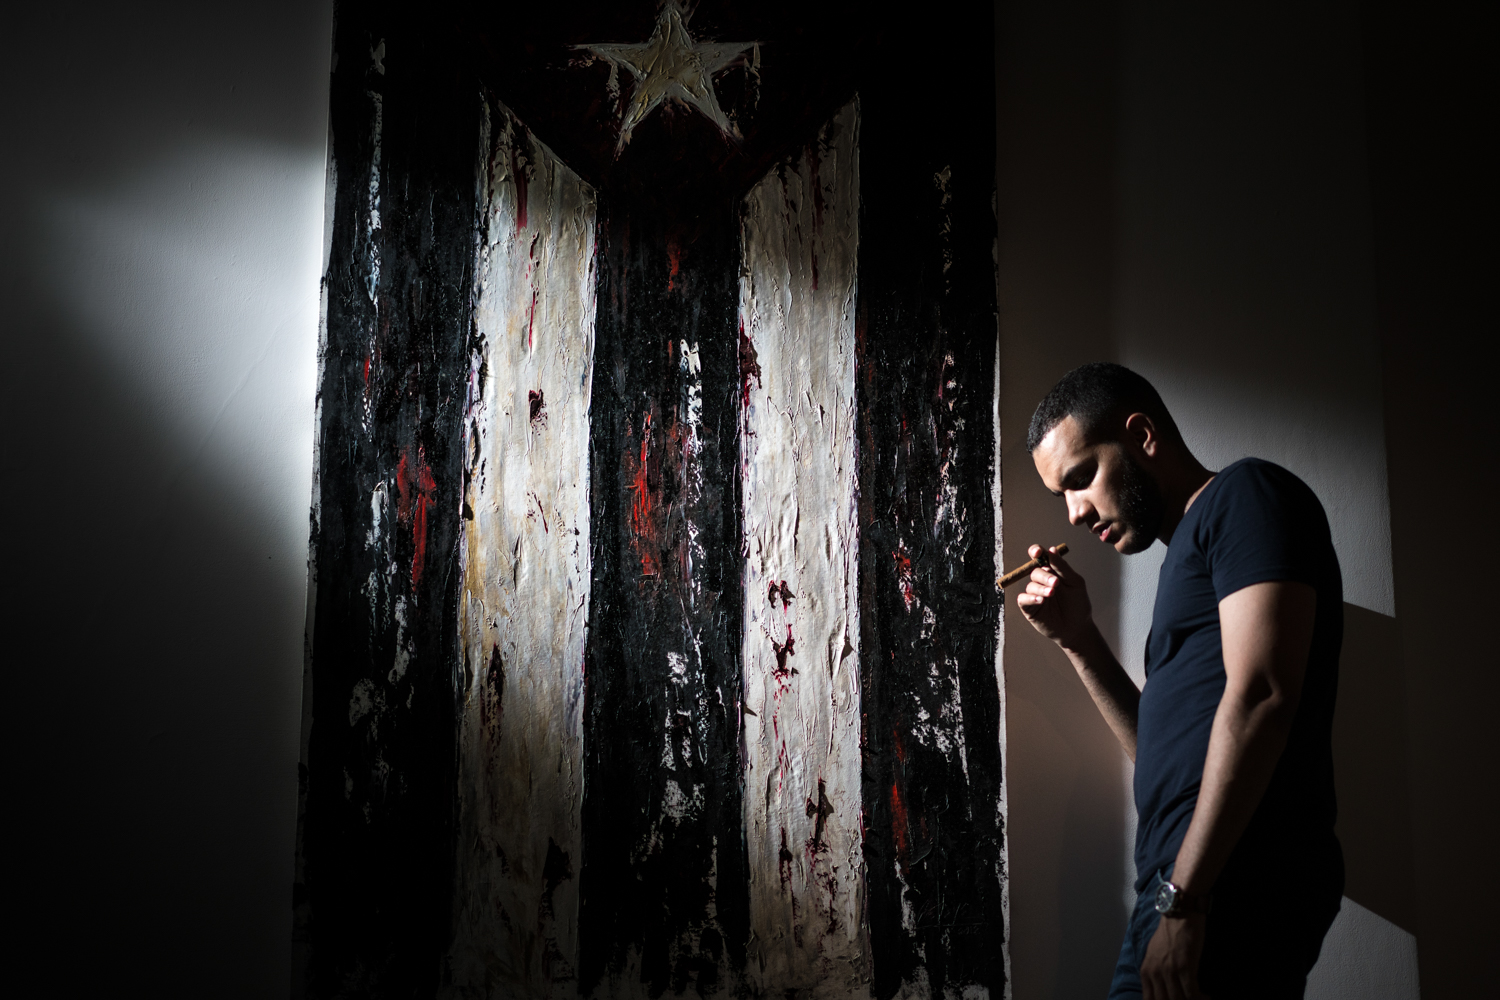 Our AirBNB had this amazing painting of a Cuban flag on the wall and while we were stuck inside during the storm, we took full advantage and I was able to shoot this portrait.  Sony A7RII, Zeiss 55mm f/1.8 (iso1000, f/1.8, 1/160s)